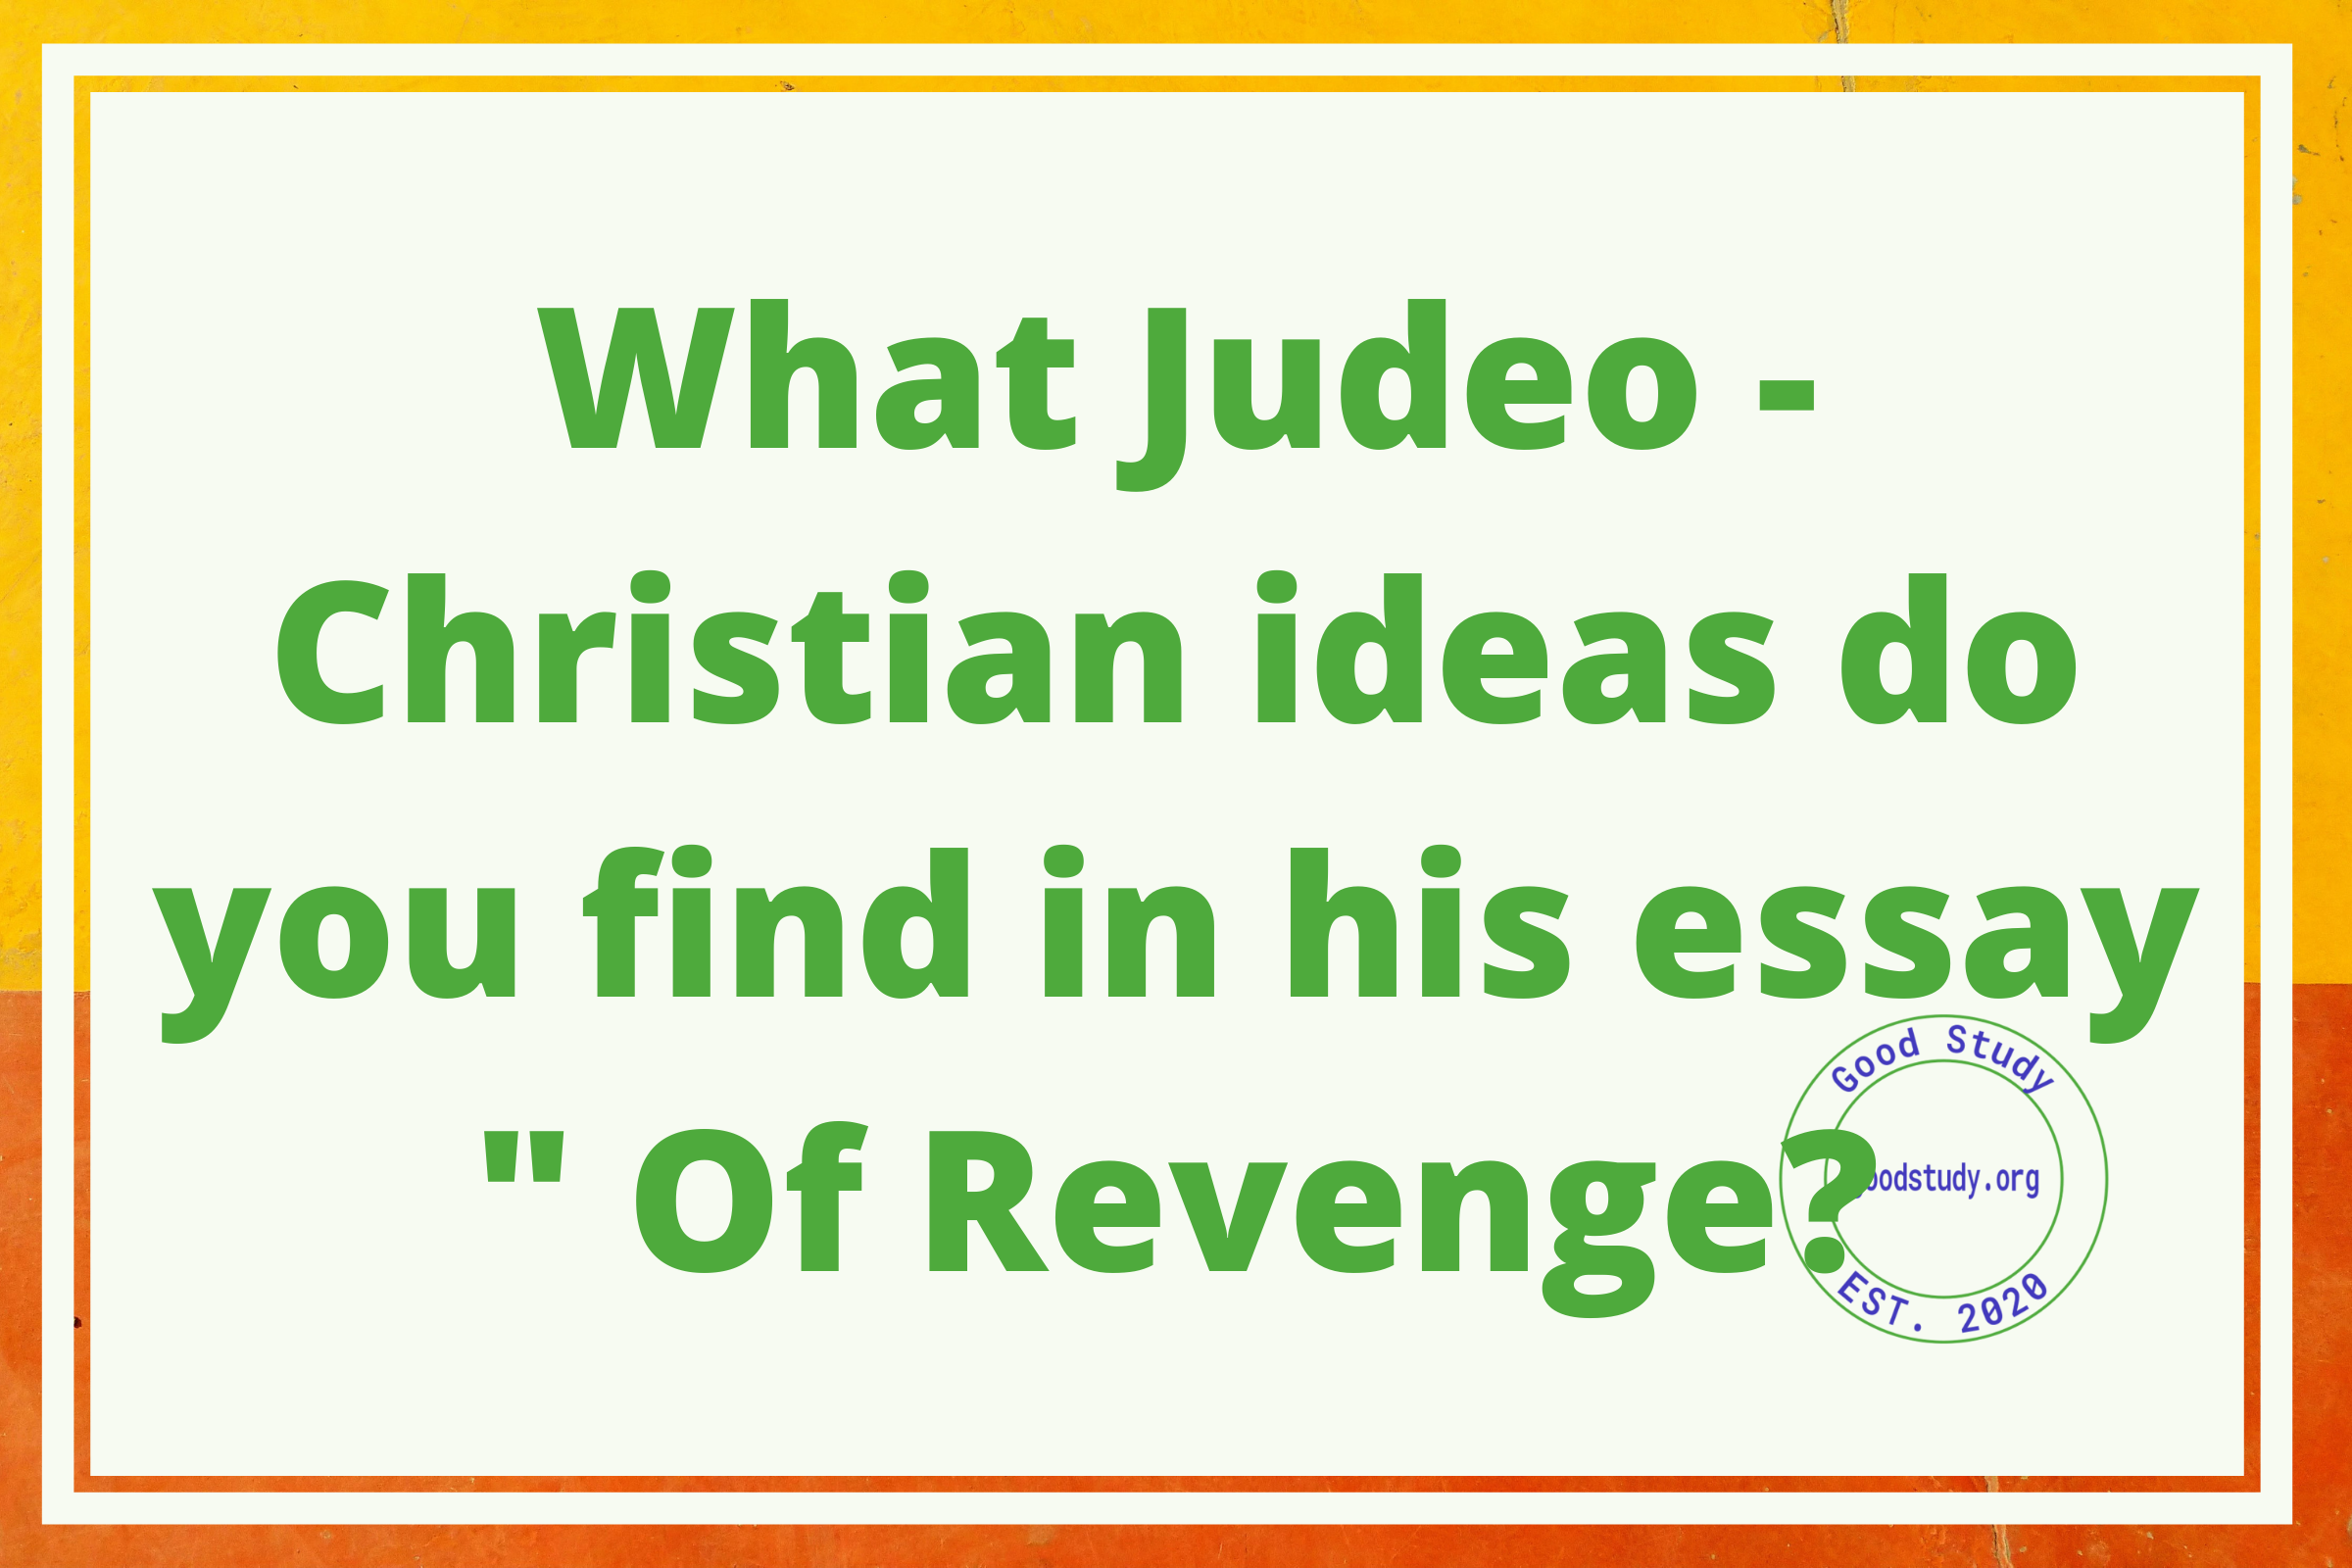 What Judeo - Christian ideas do you find in his essay